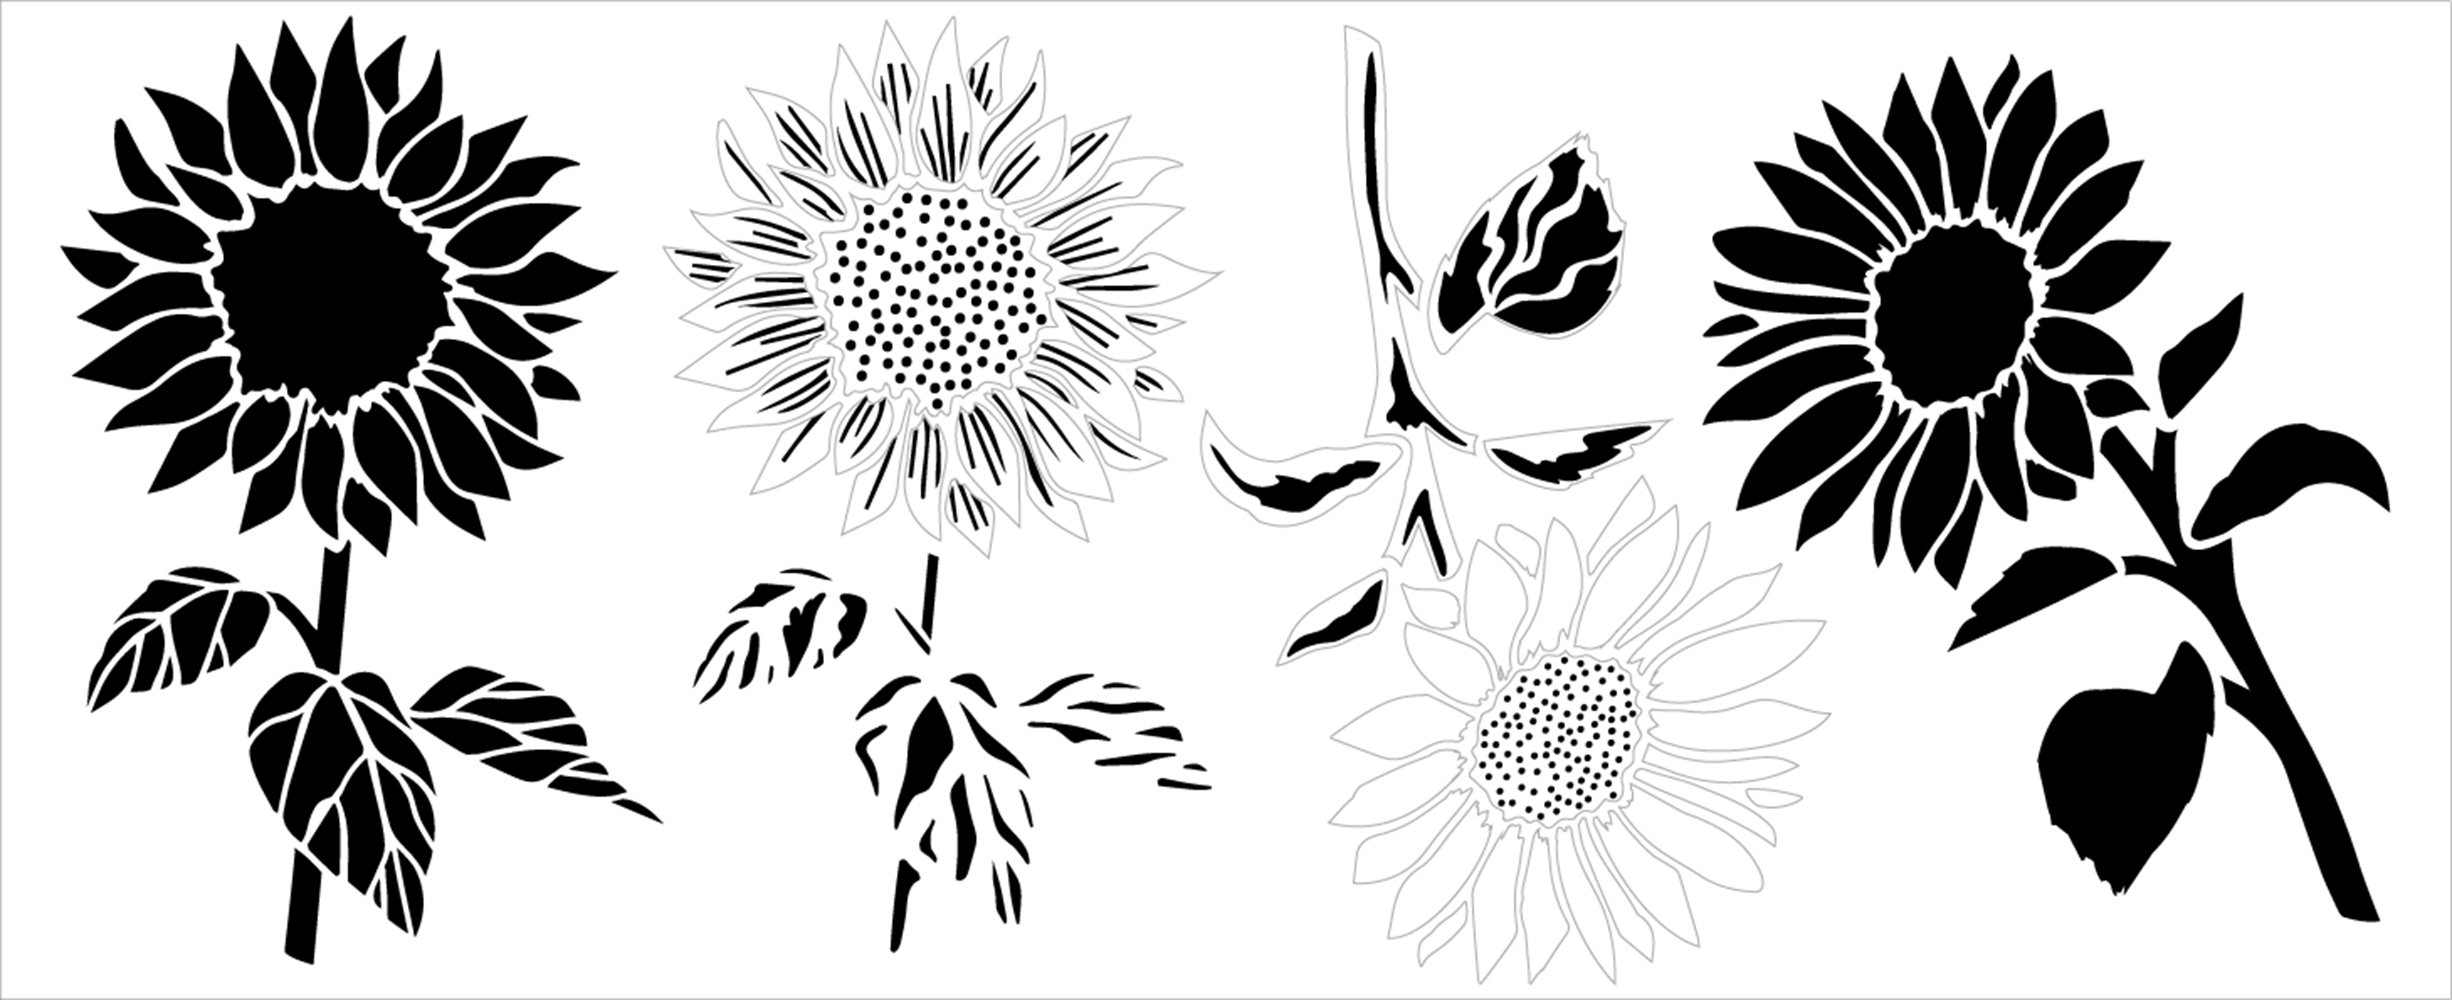 Sunflowers with Stem and Leaves Stencil by StudioR12 | DIY Summer Garden Home Decor | Craft & Paint Wood Sign | Reusable Mylar Template | Select Size